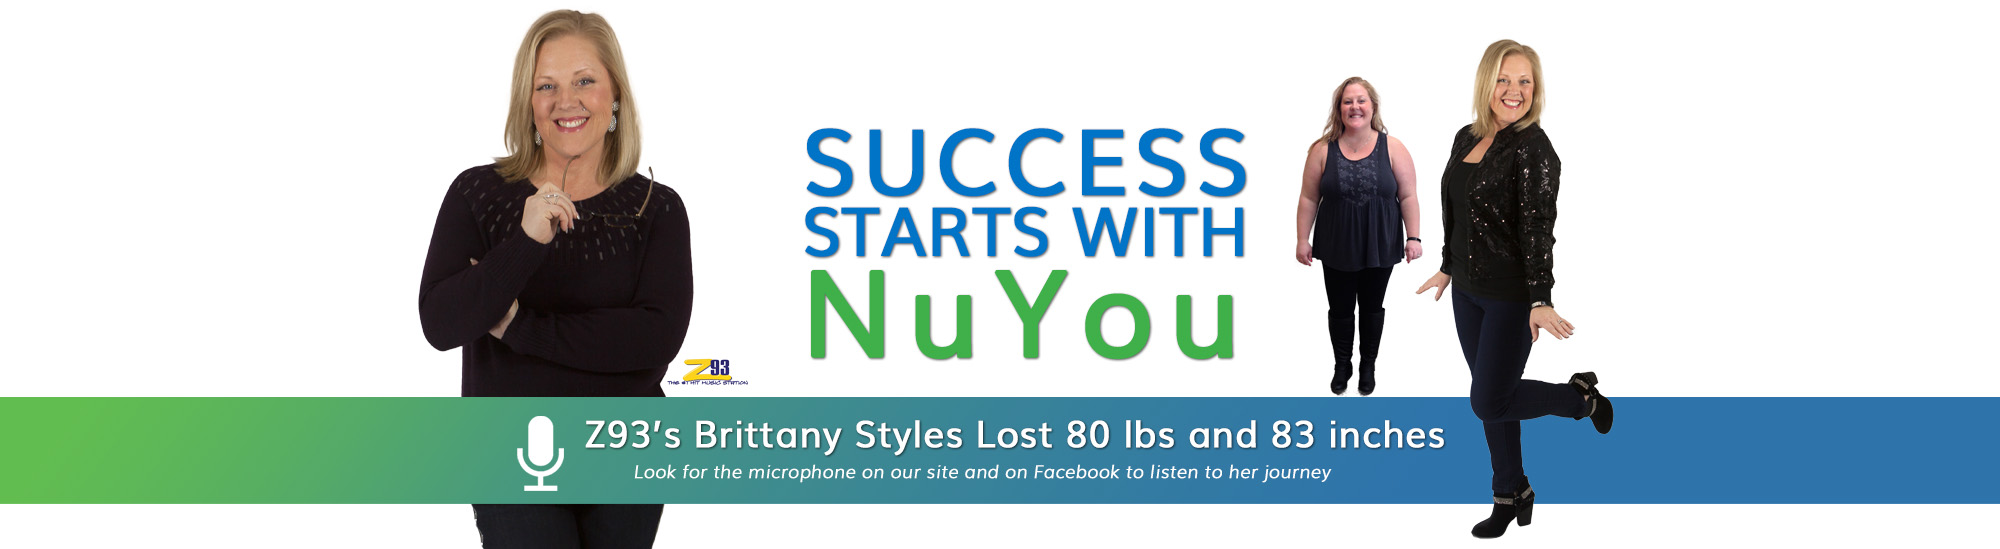 Brittany Styles of Z93 lost 80 pounds with NuYou Weight Loss - you can listen to her journey on audio and video clips on our site and Facebook.